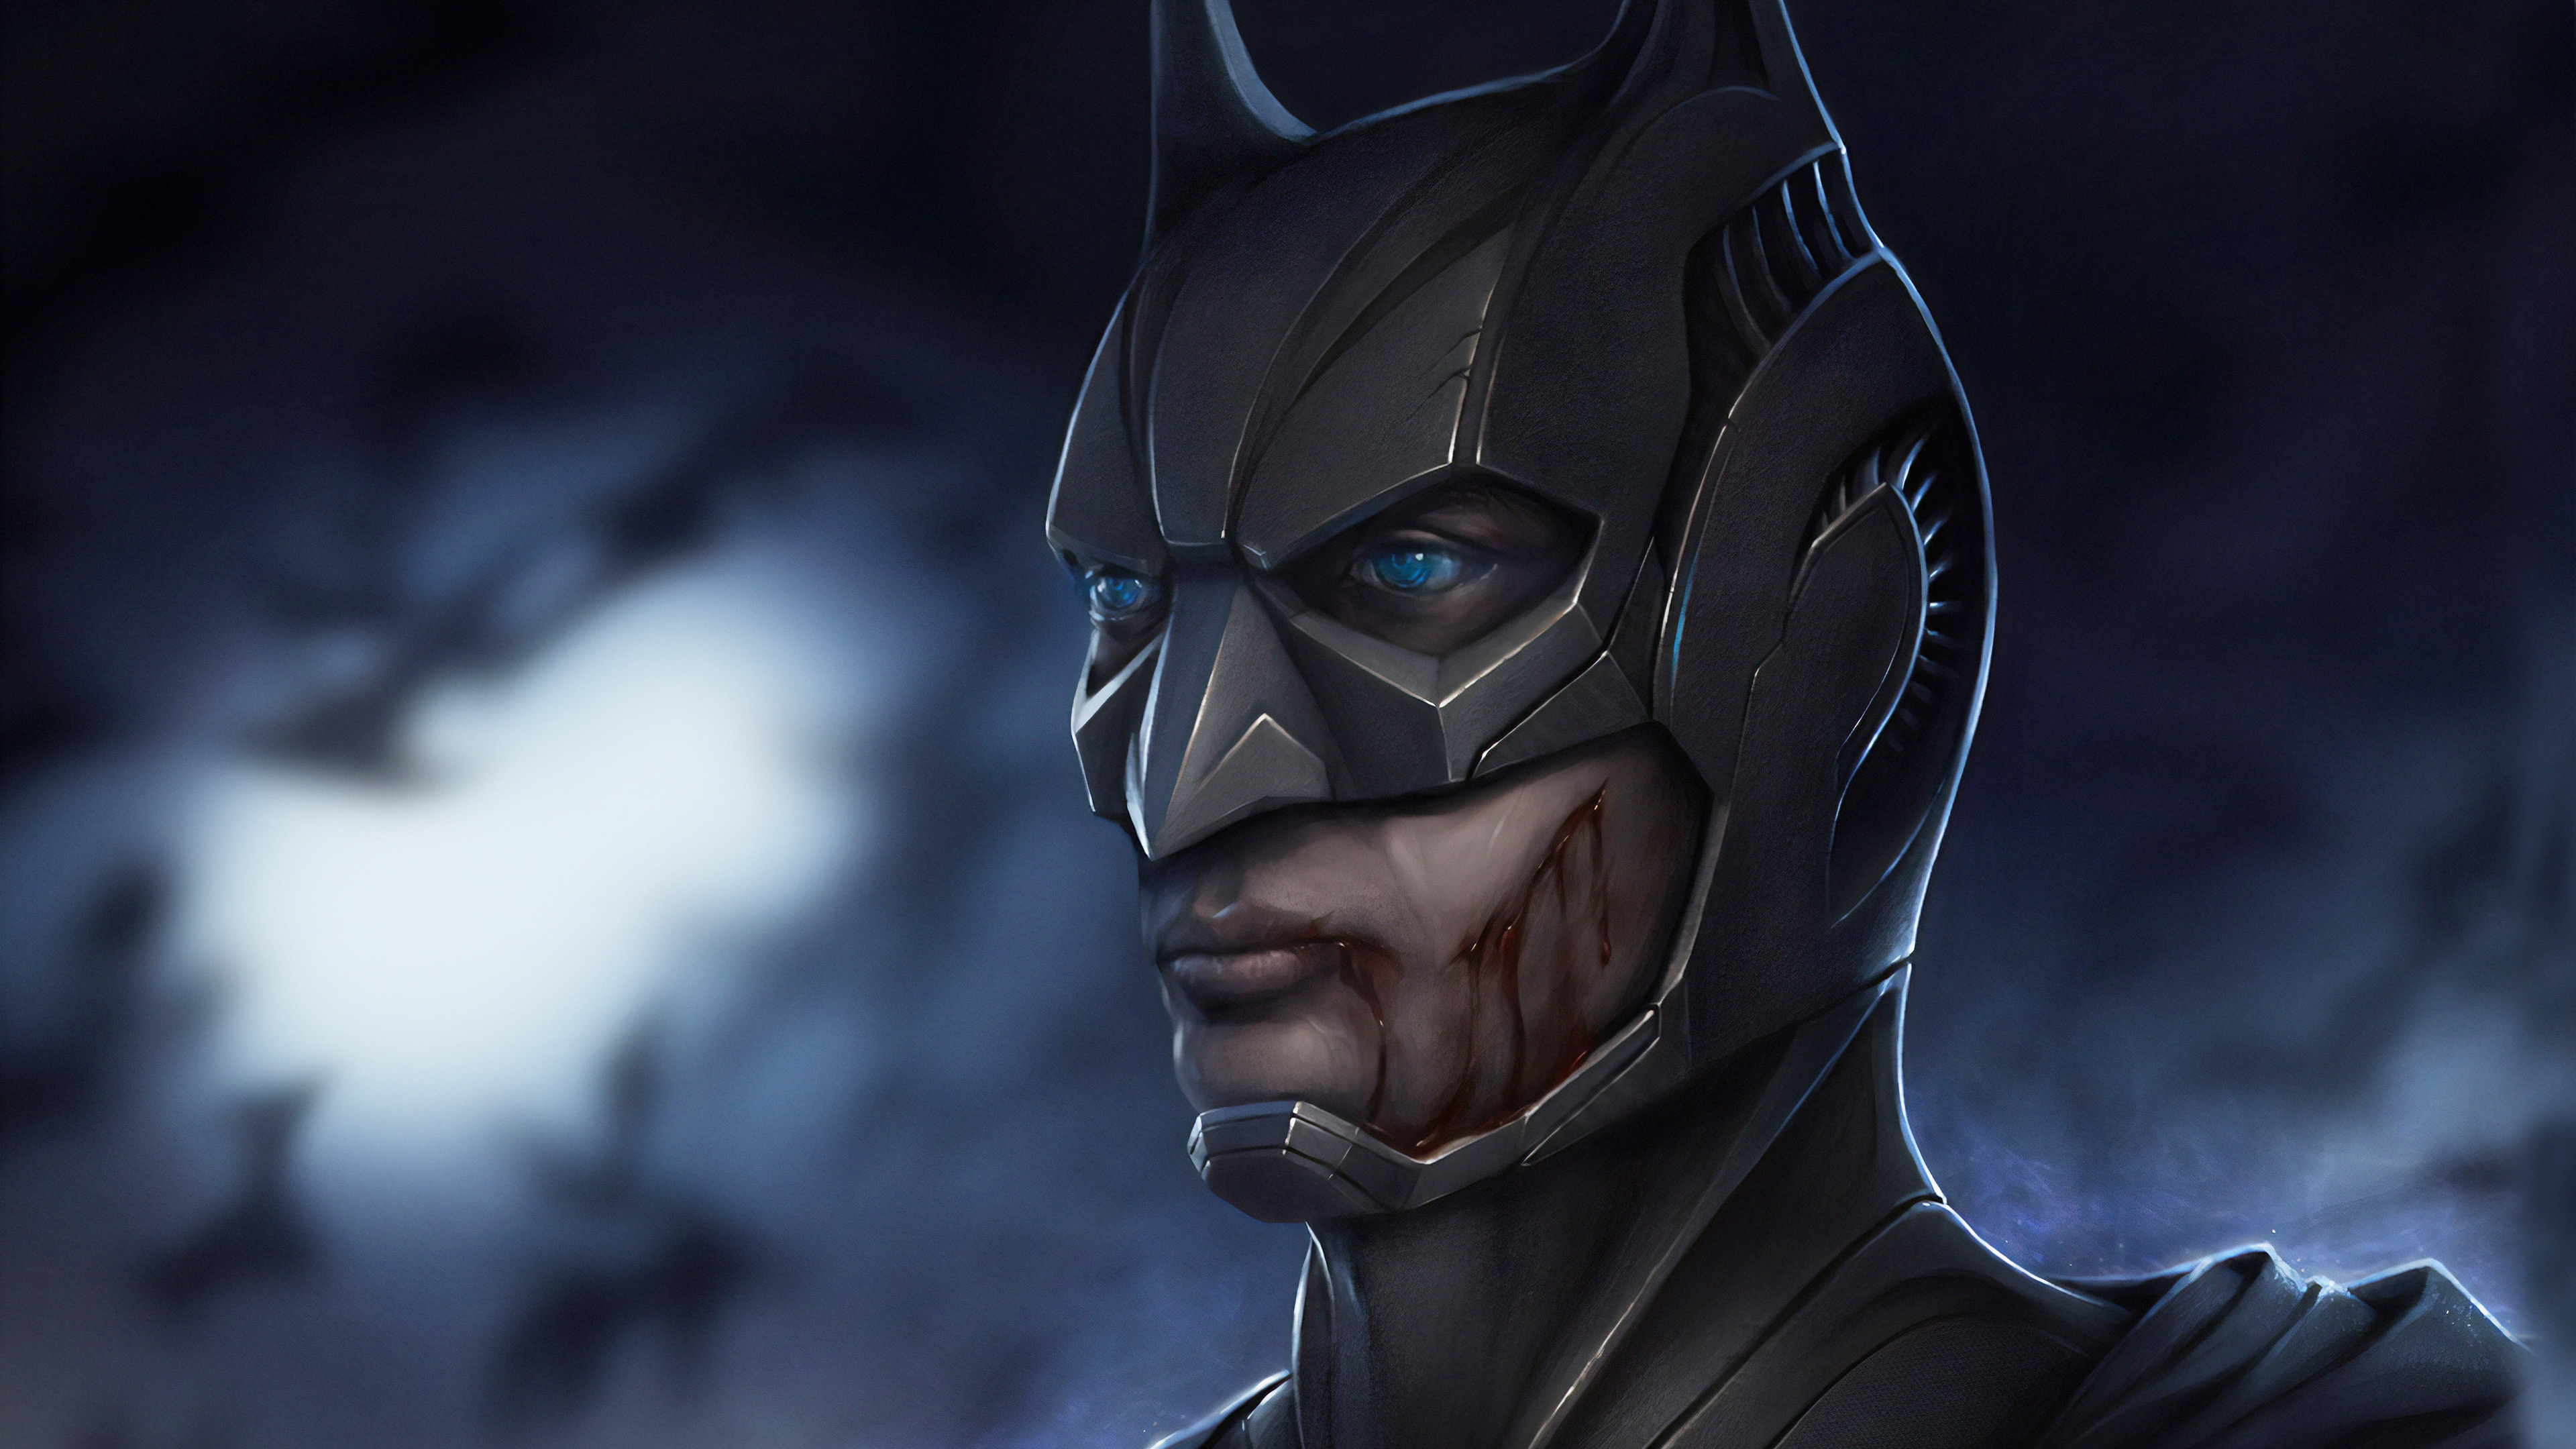 injured batman 1565053684 - Injured Batman - superheroes wallpapers, hd-wallpapers, digital art wallpapers, deviantart wallpapers, batman wallpapers, artwork wallpapers, 4k-wallpapers